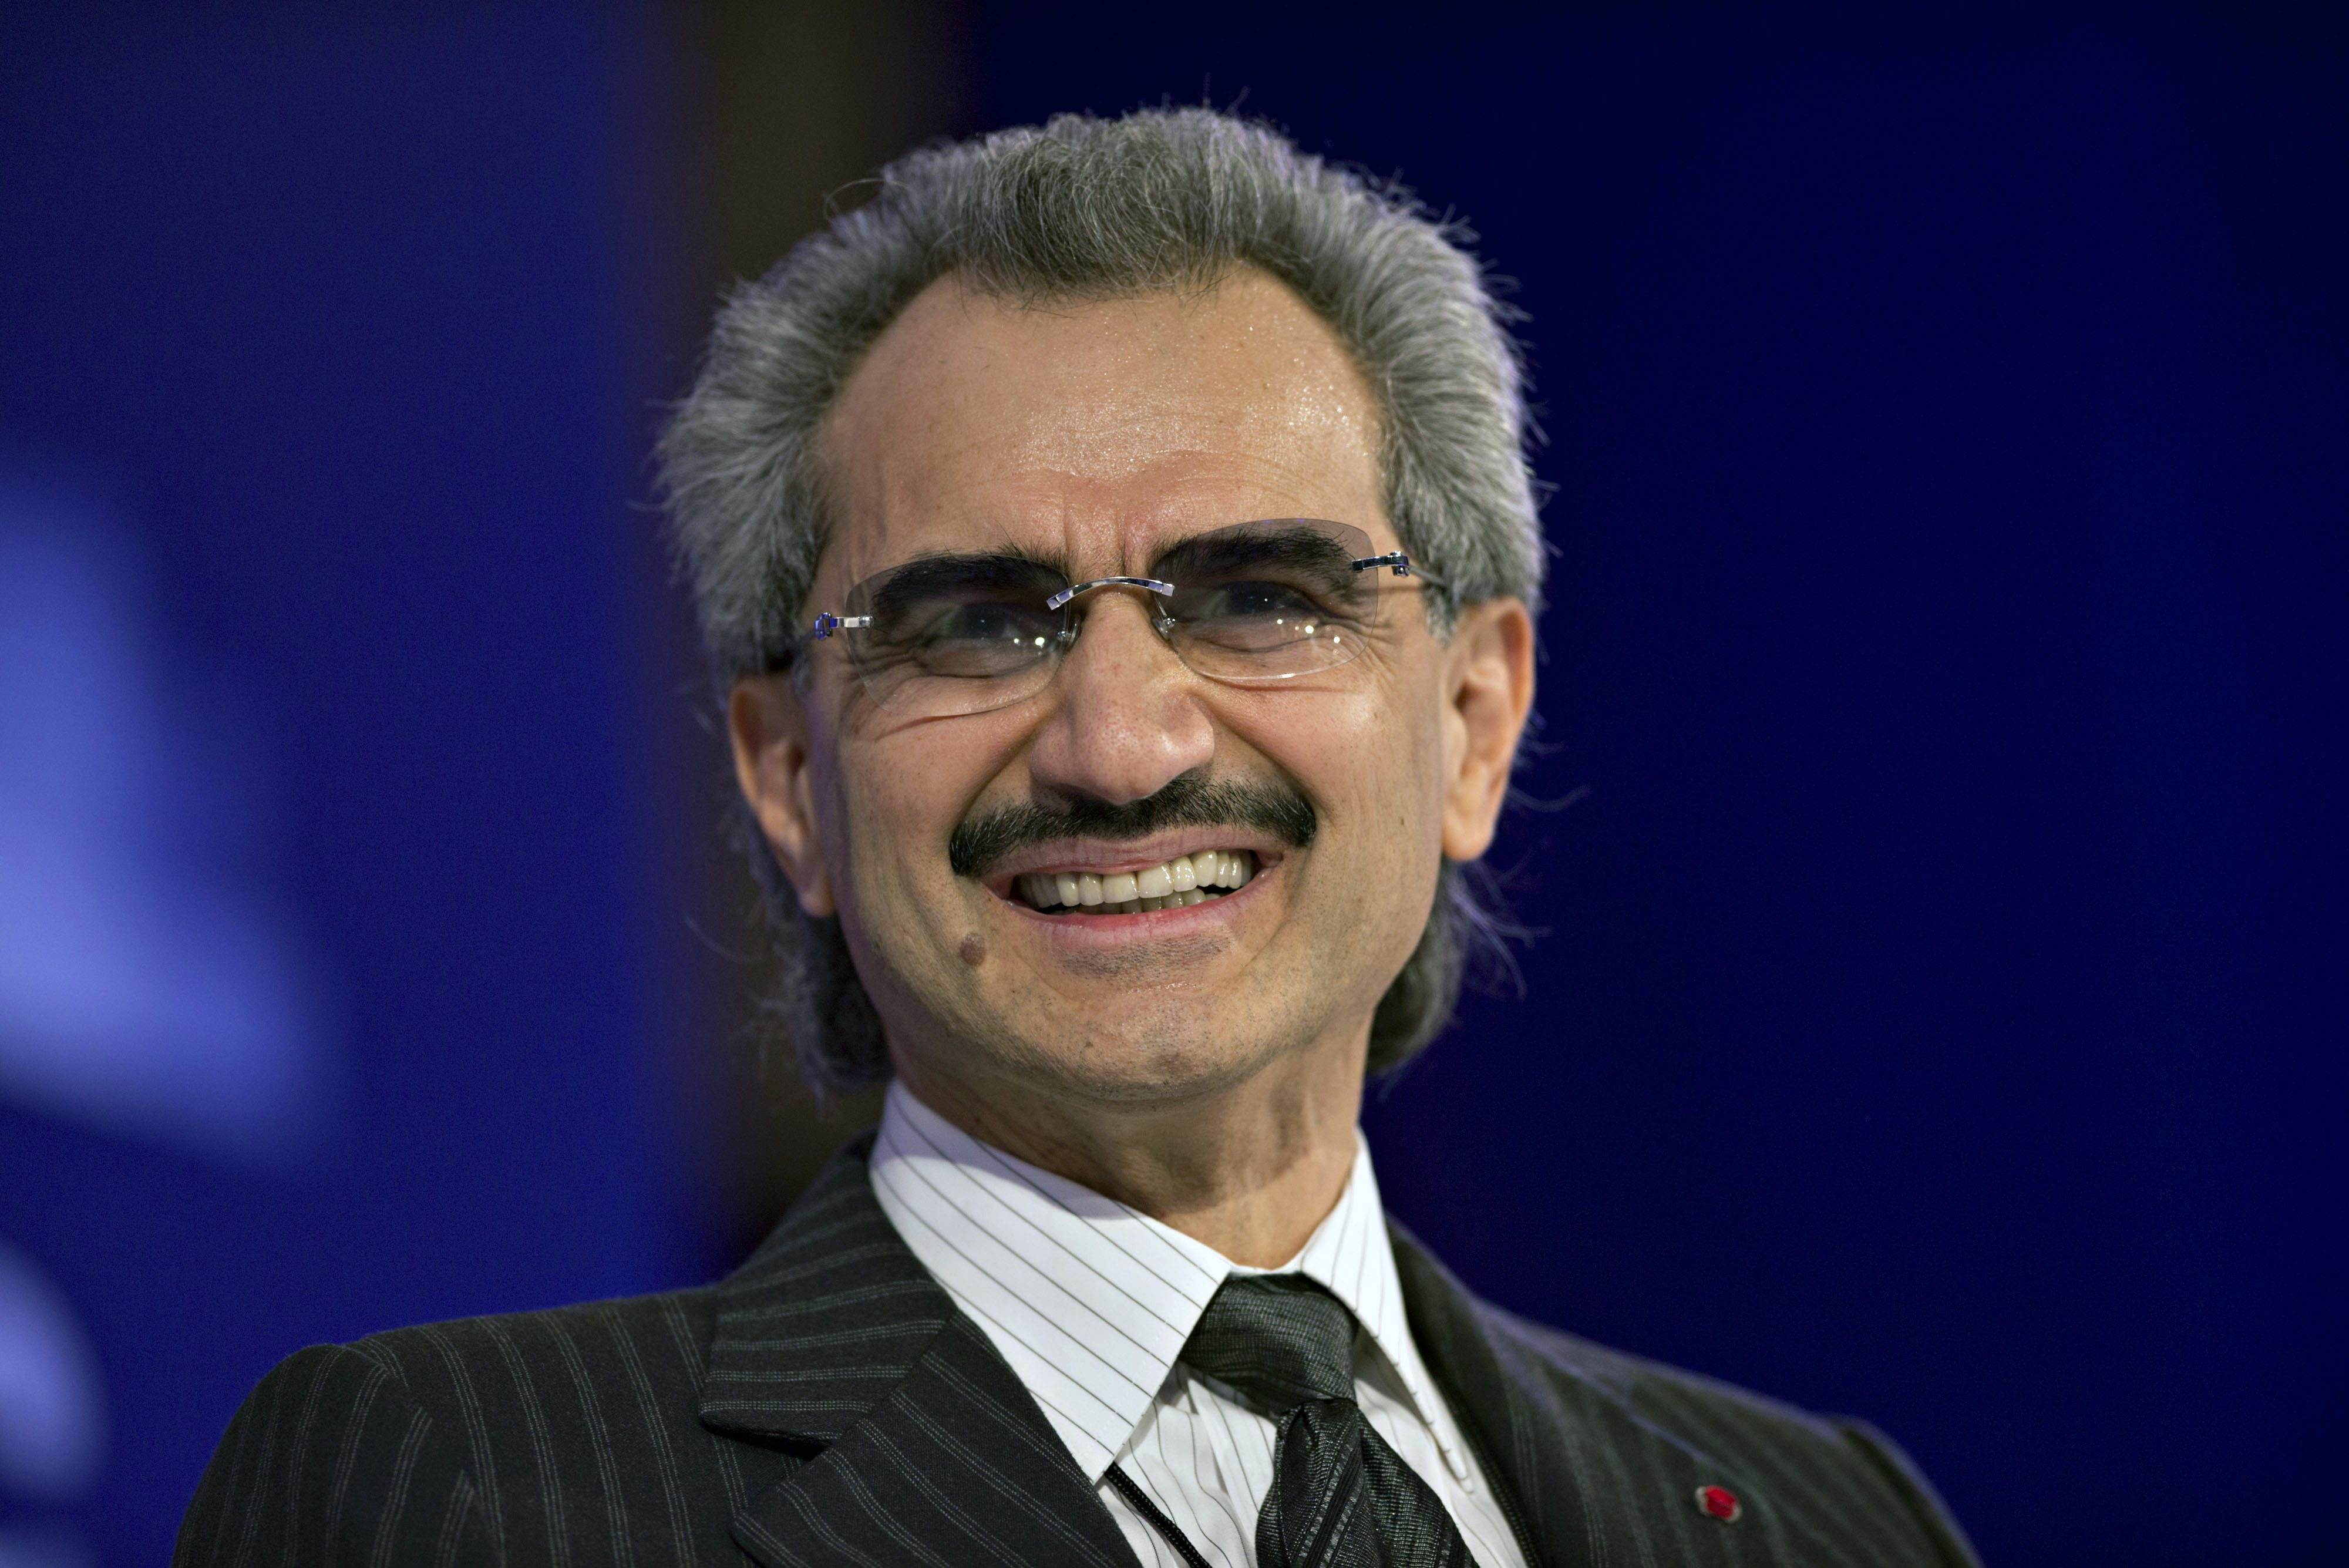 Prince Alwaleed bin Talal was among those arrested in recent crackdowns in Saudi Arabia